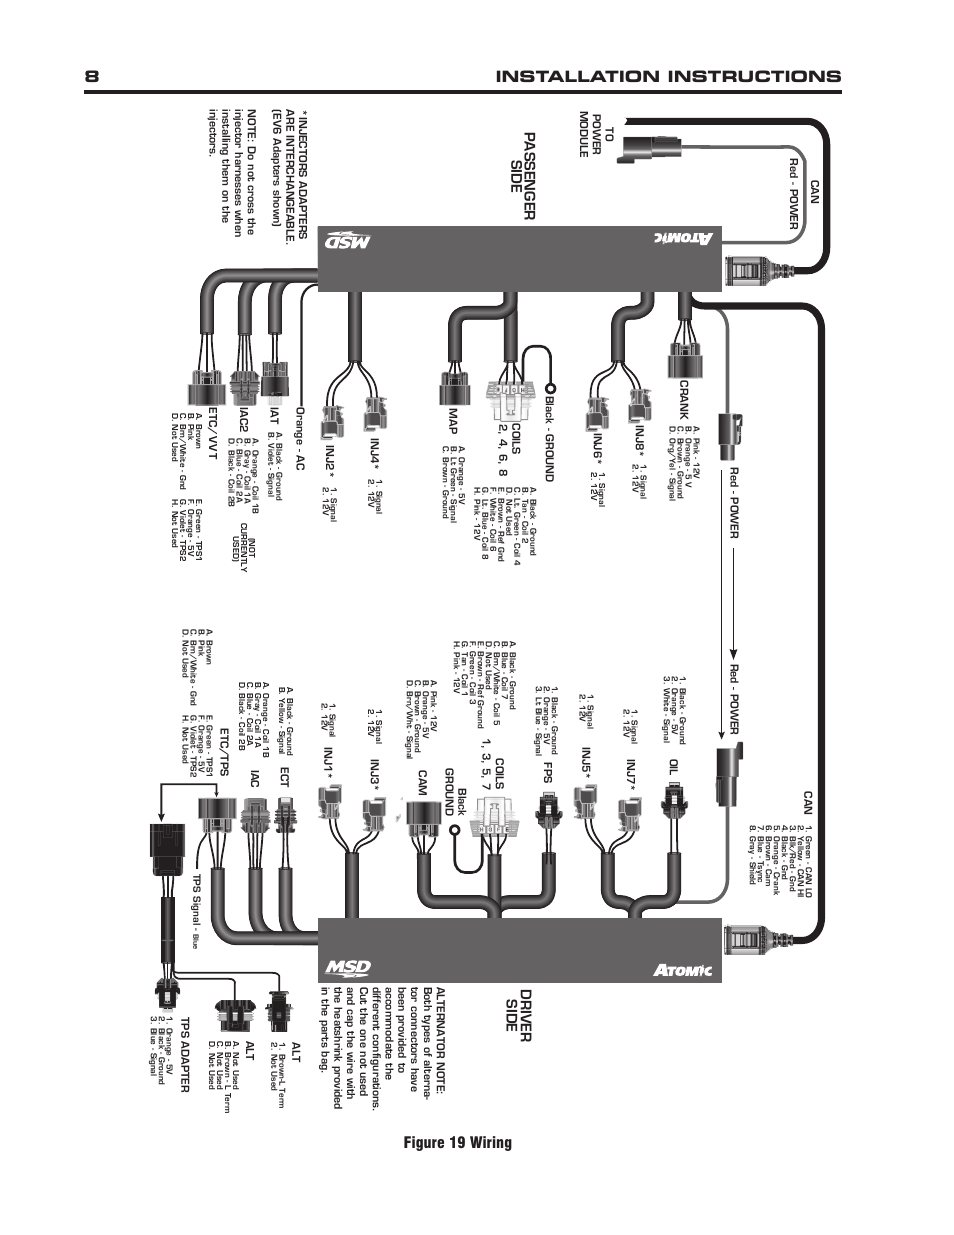 8installation instructions m s d, Figure 19 wiring, Driver